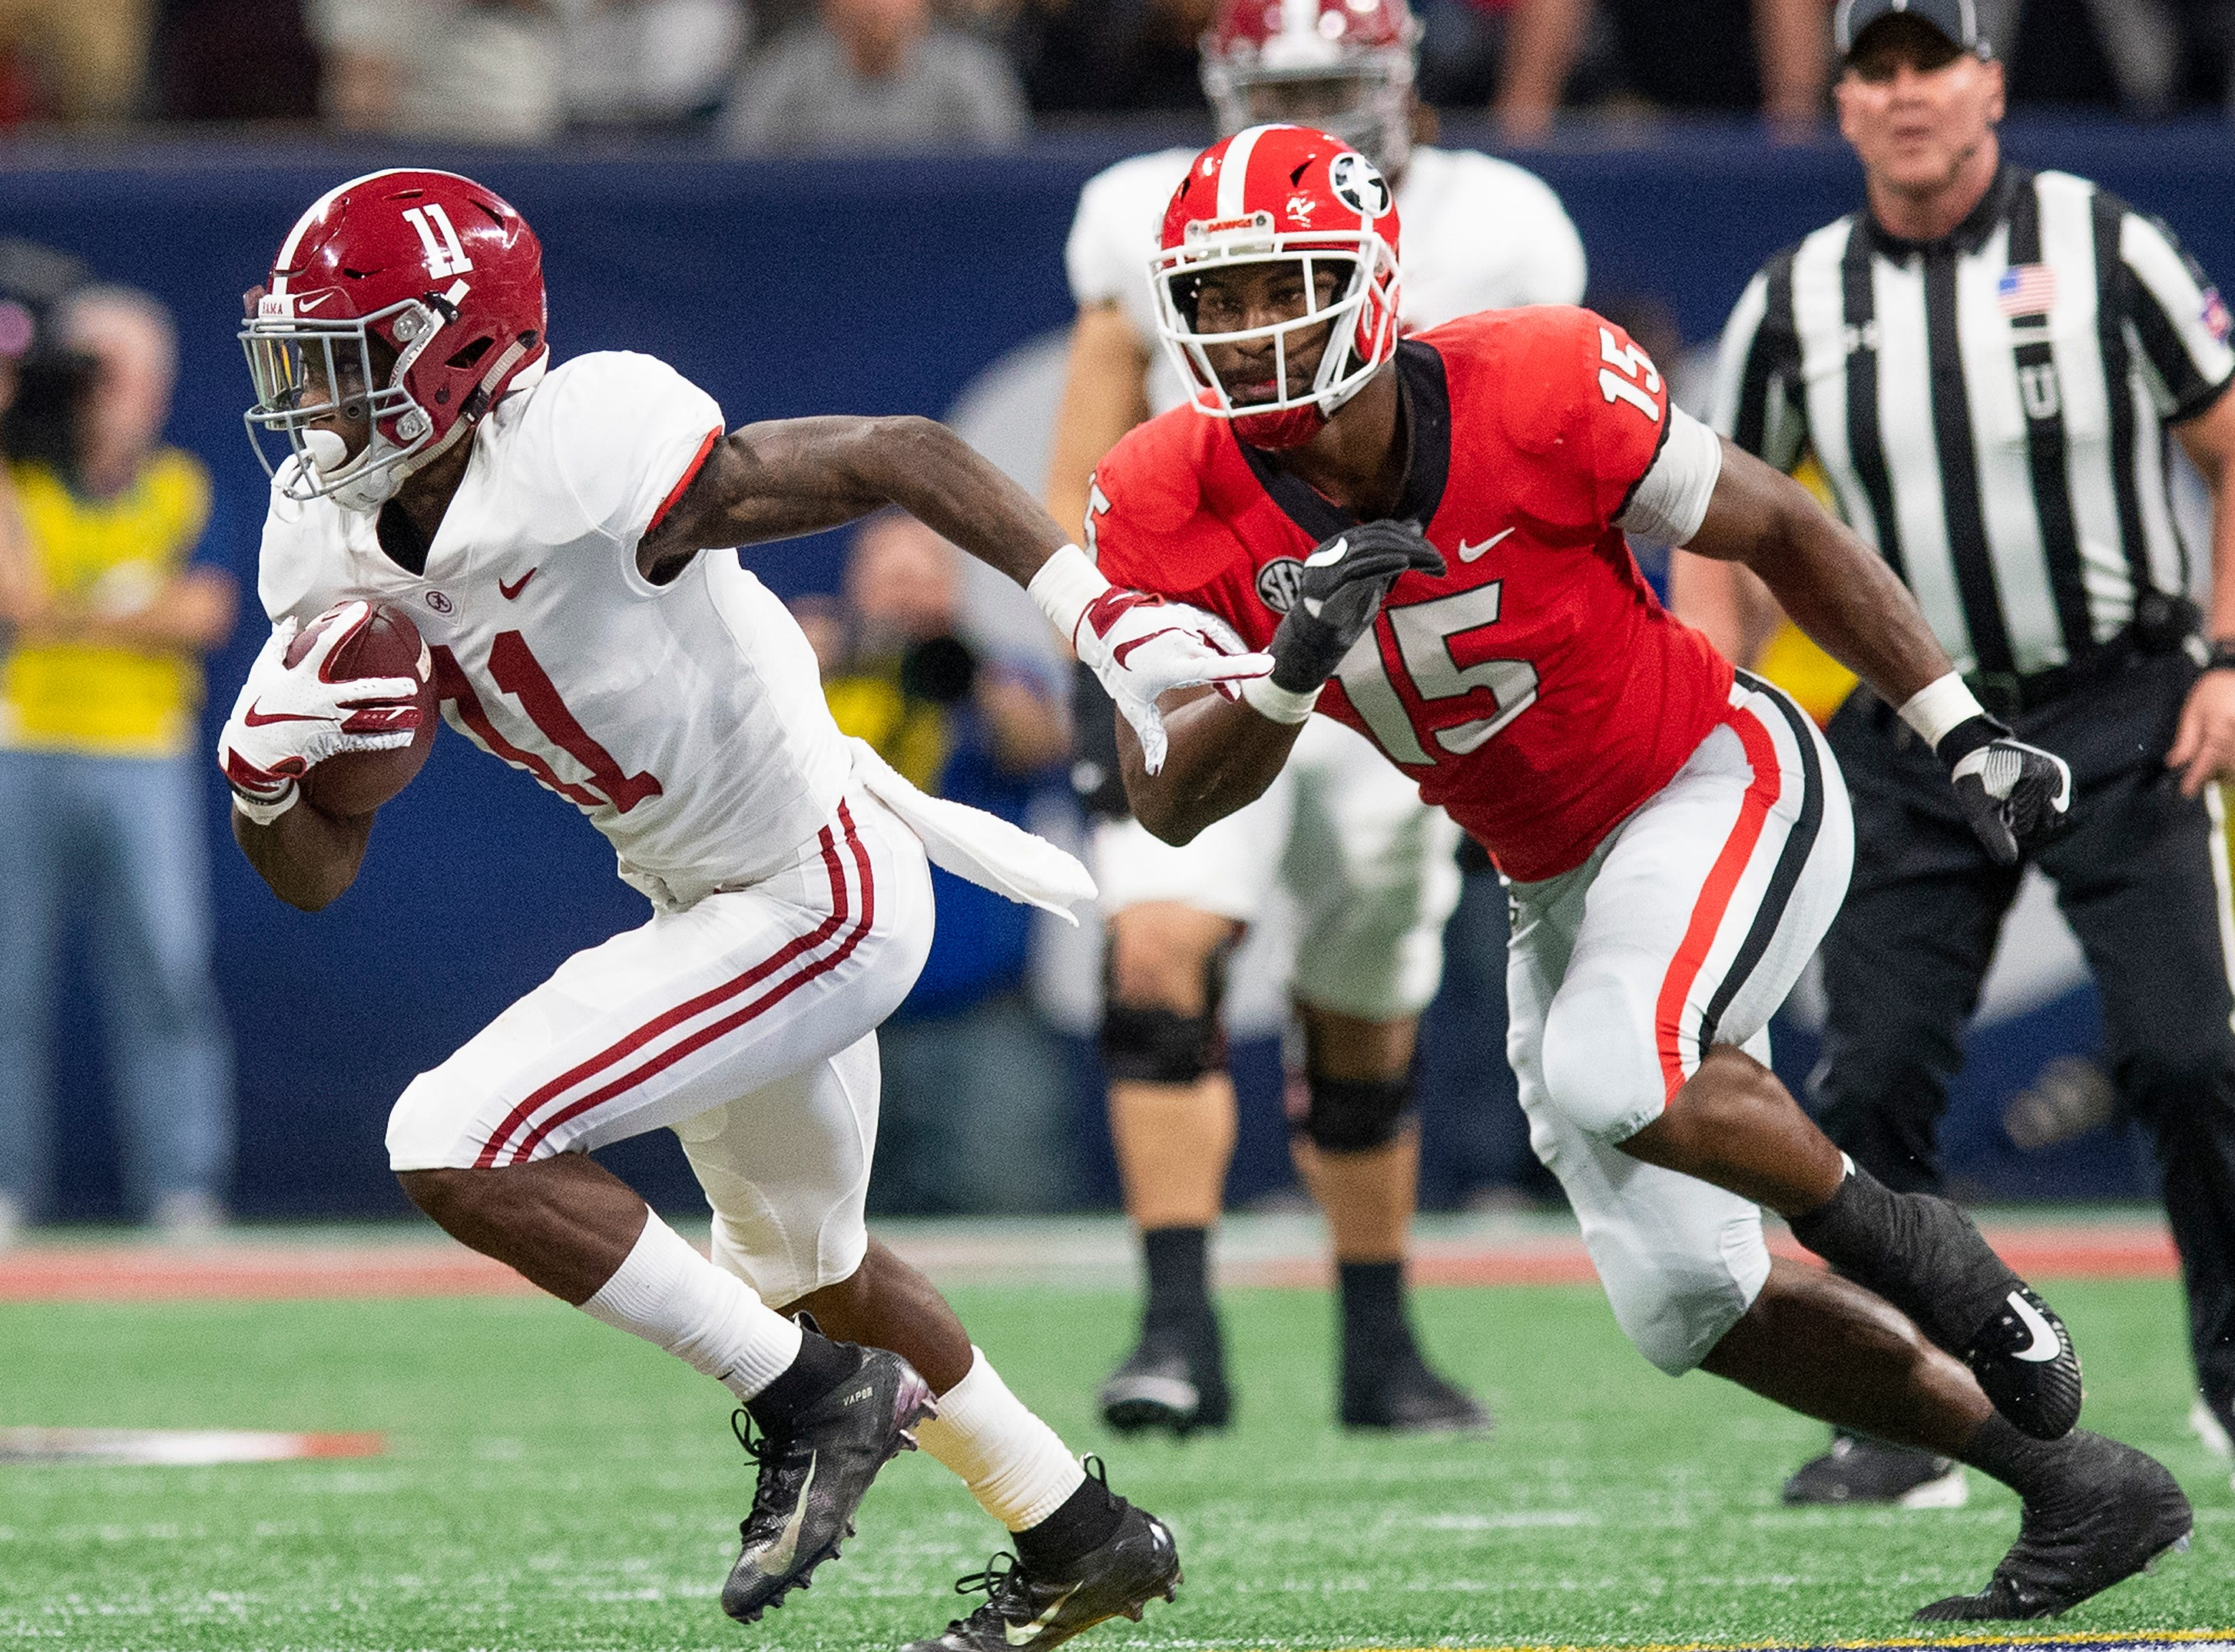 Alabama wide receiver Henry Ruggs, III, (11) carries the ball against Georgia linebacker D'Andre Walker (15) during first half action of the SEC Championship Game at Mercedes Benz Stadium in Atlanta, Ga., on Saturday December 1, 2018.